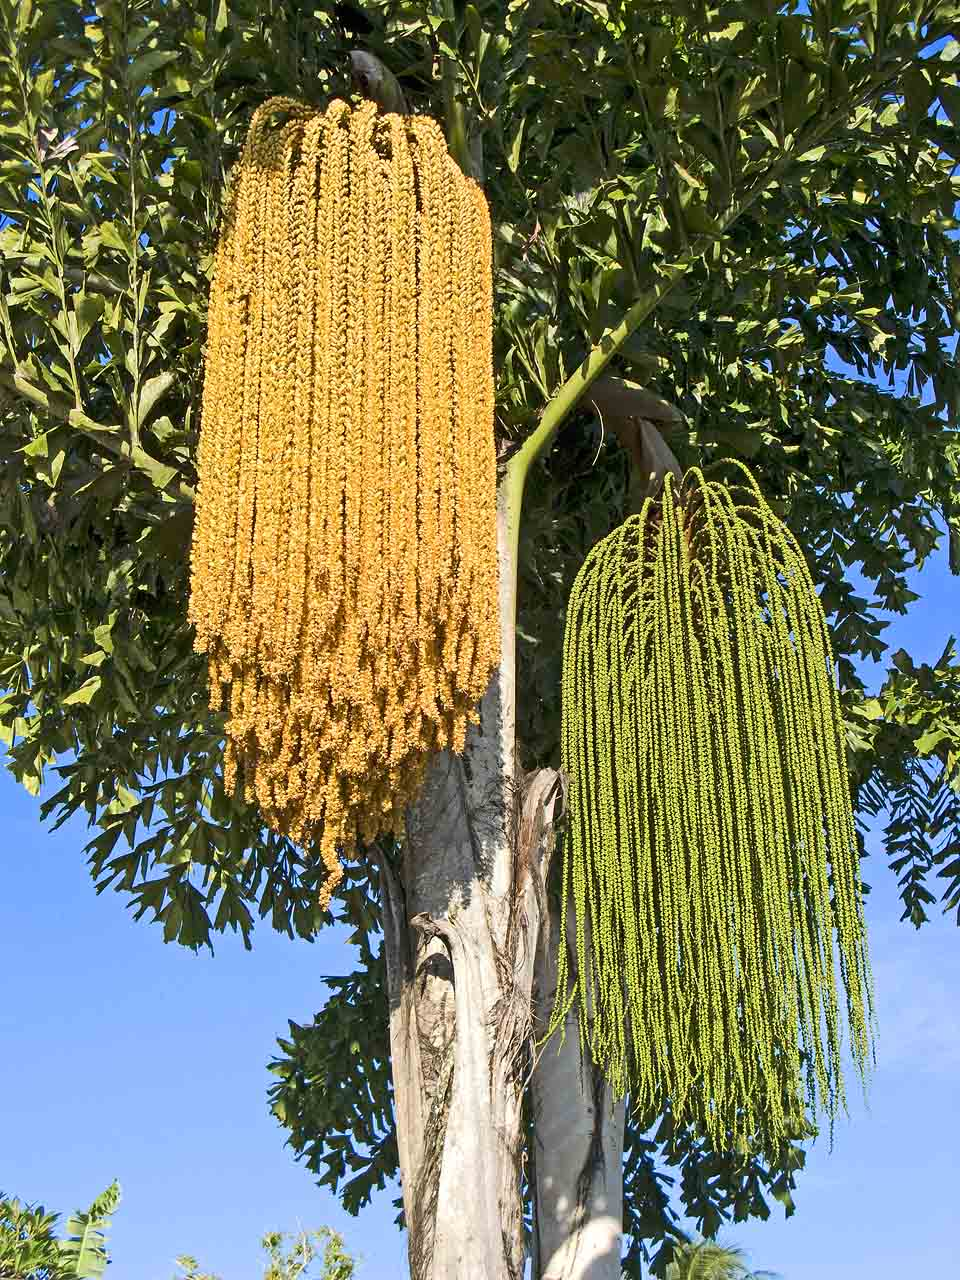 Fishtail Palm inflorescences